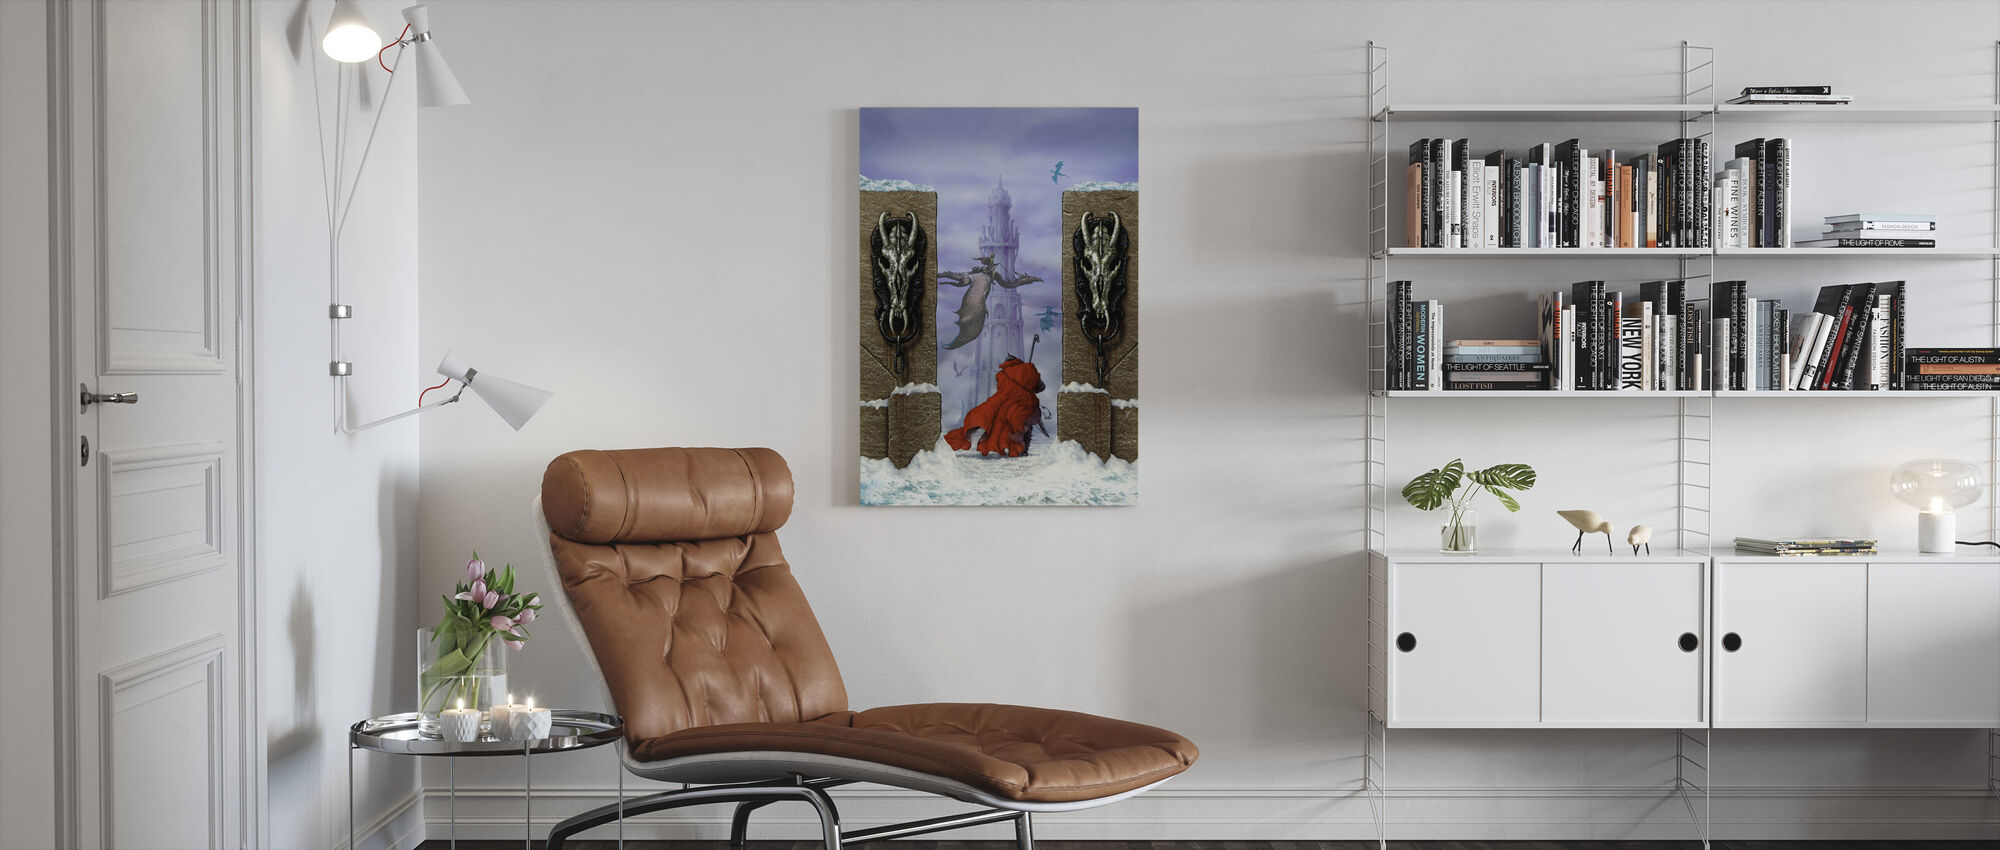 Dungeon - Canvas print - Living Room